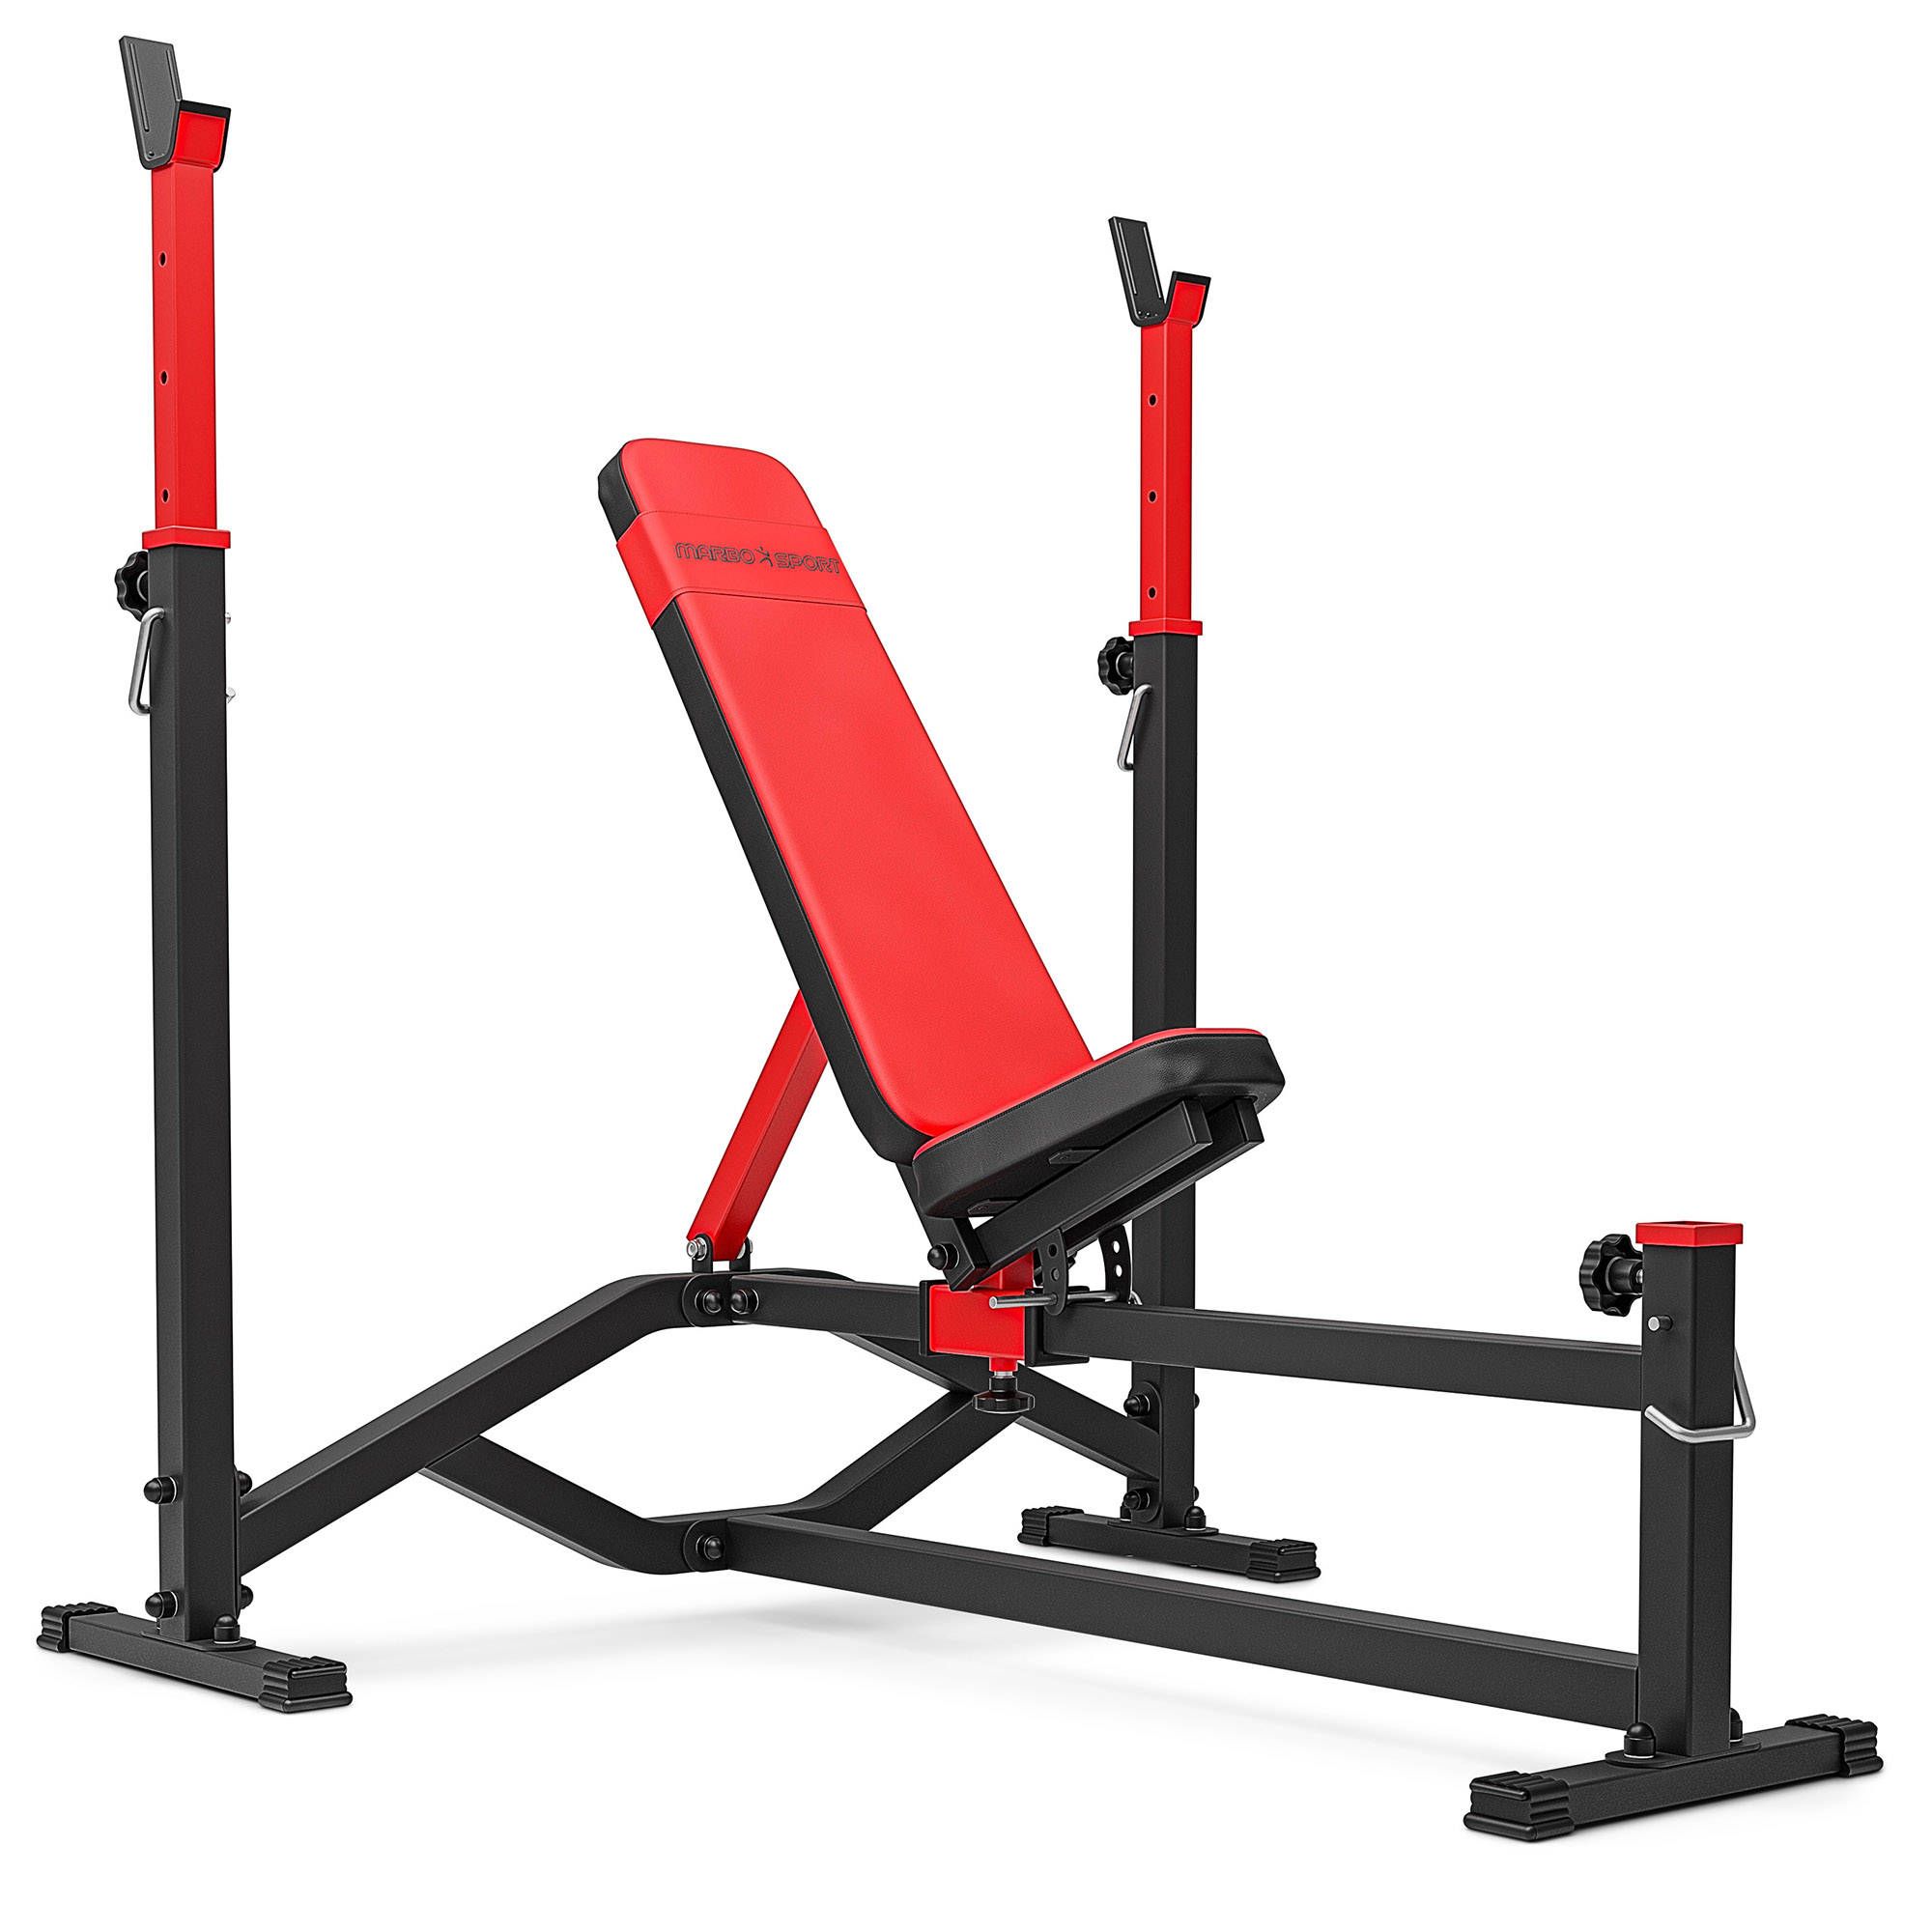 Adjustable Olympic Bench Ms L105 Marbo Sport B2b Marbo